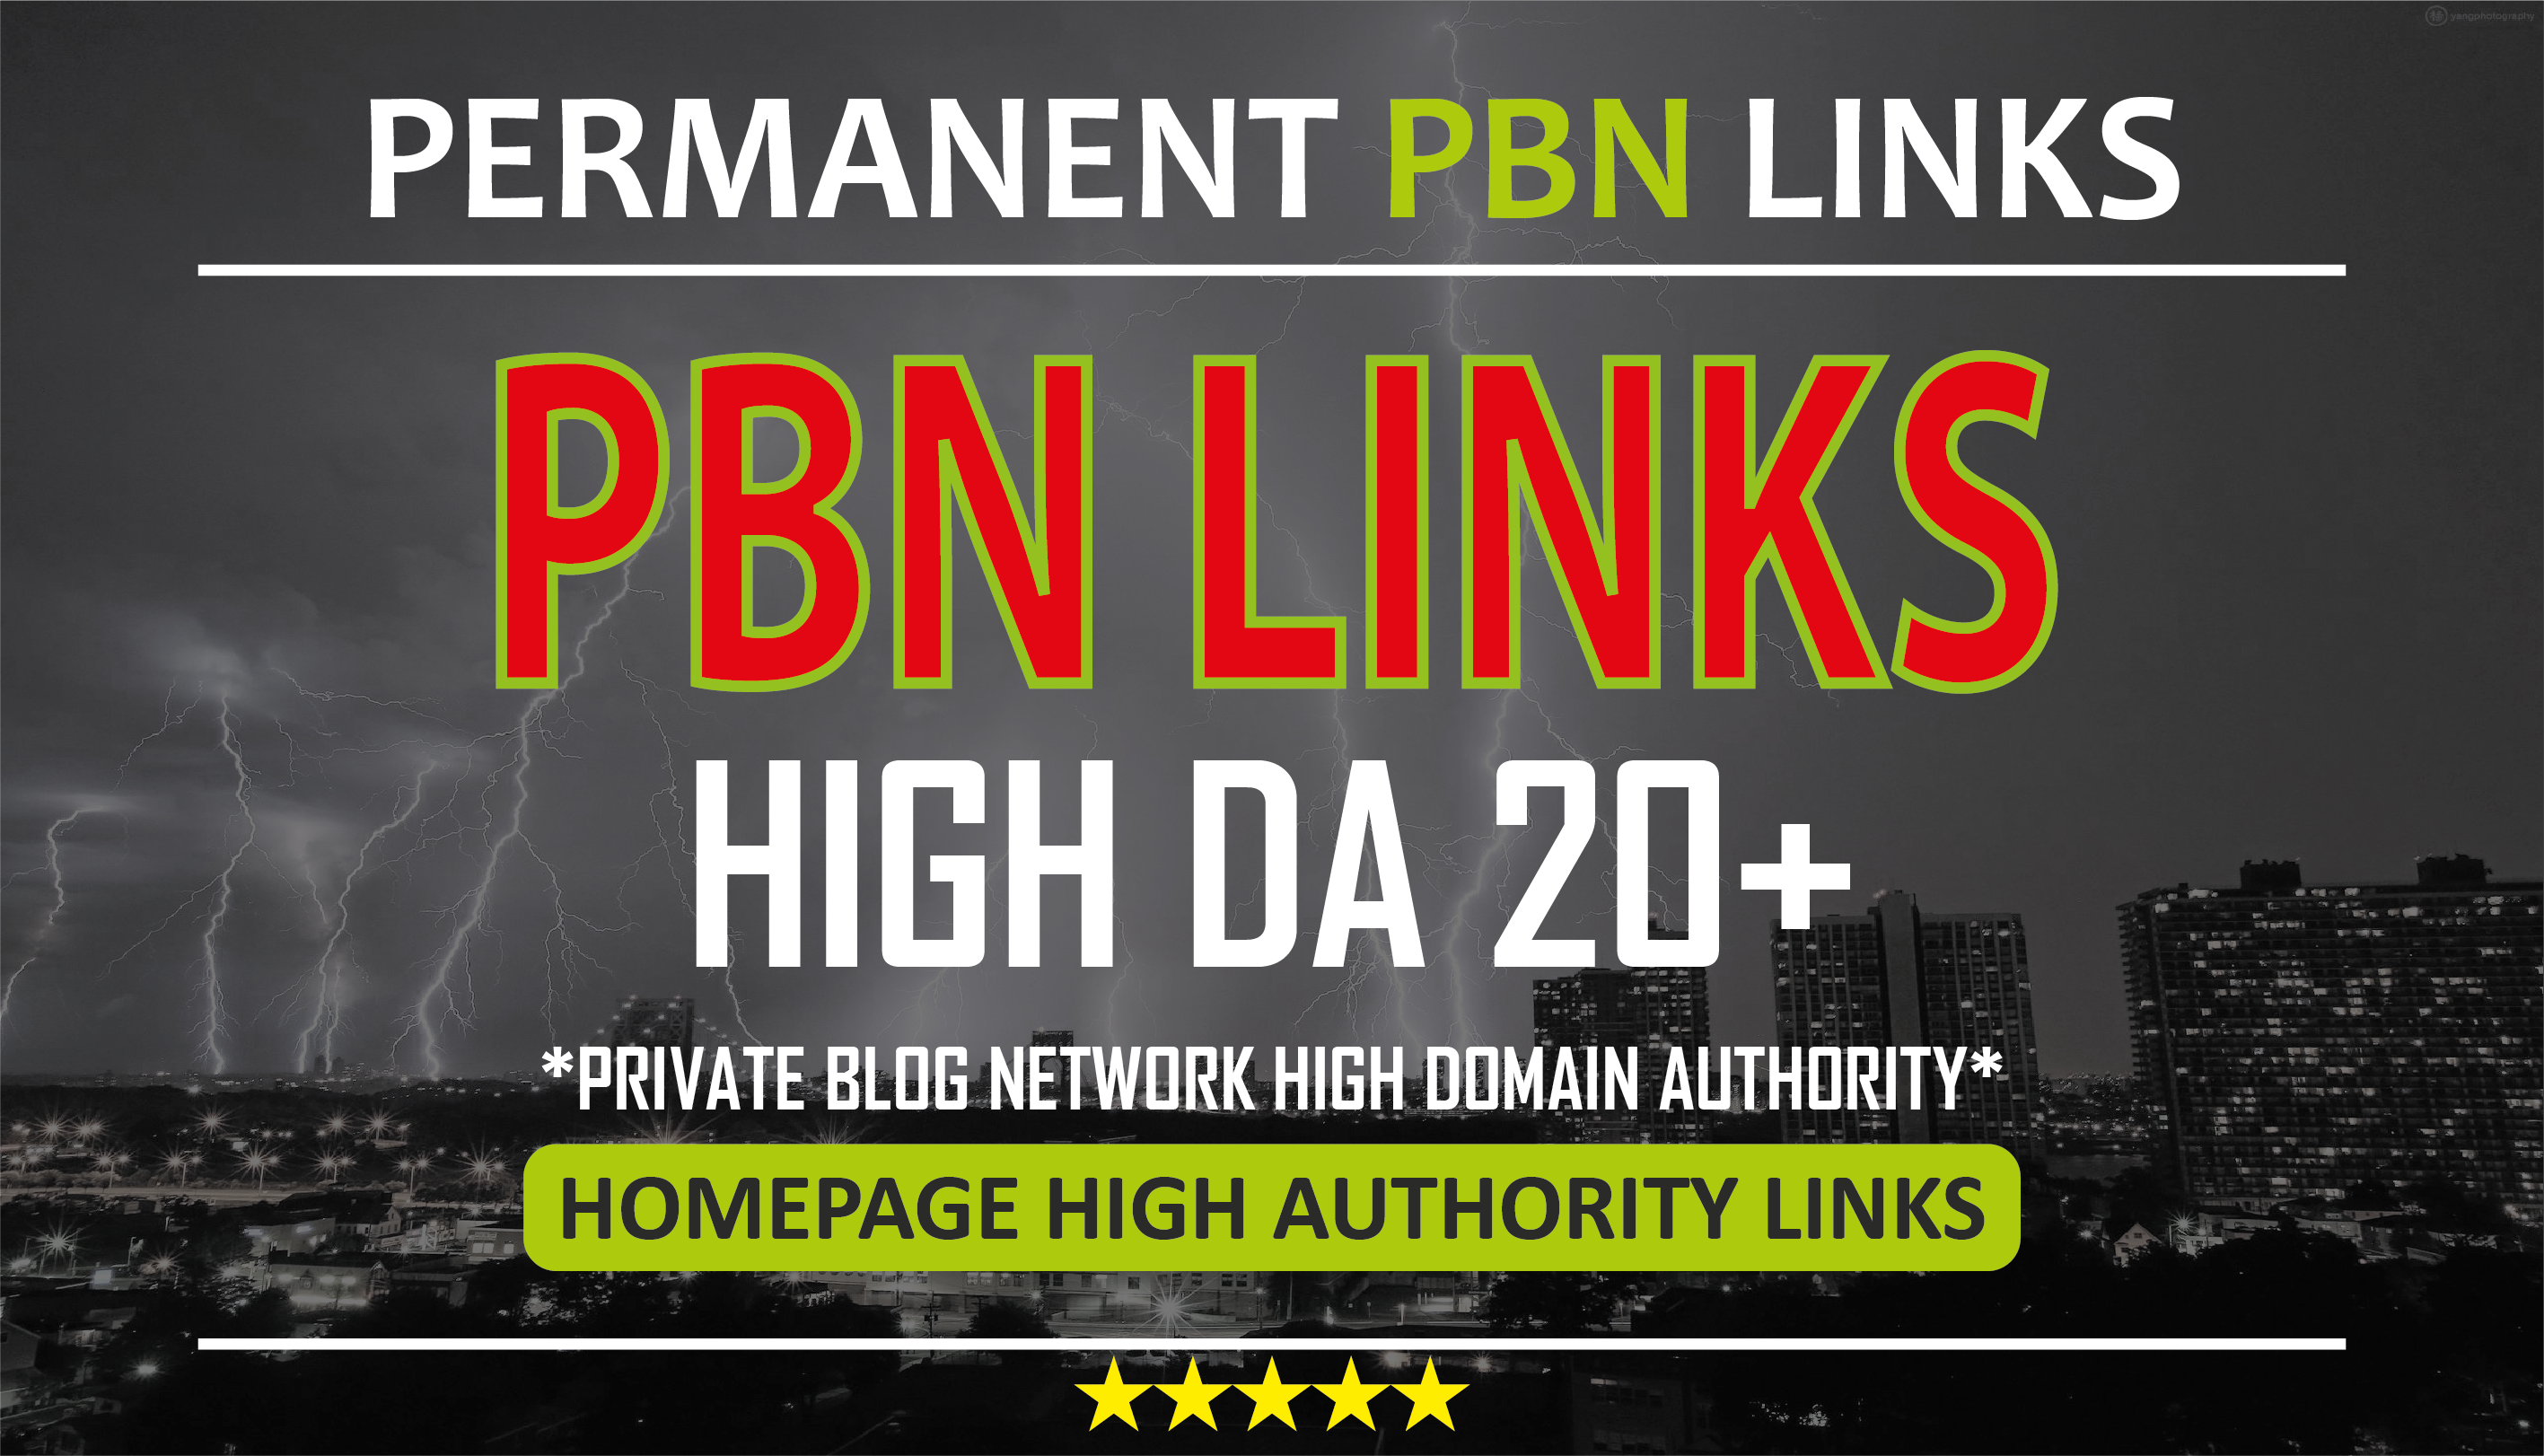 I Will Create 30 Manual DR 40+ Homepage PBN Backlinks - Dofollow Quality PBN Backlinks